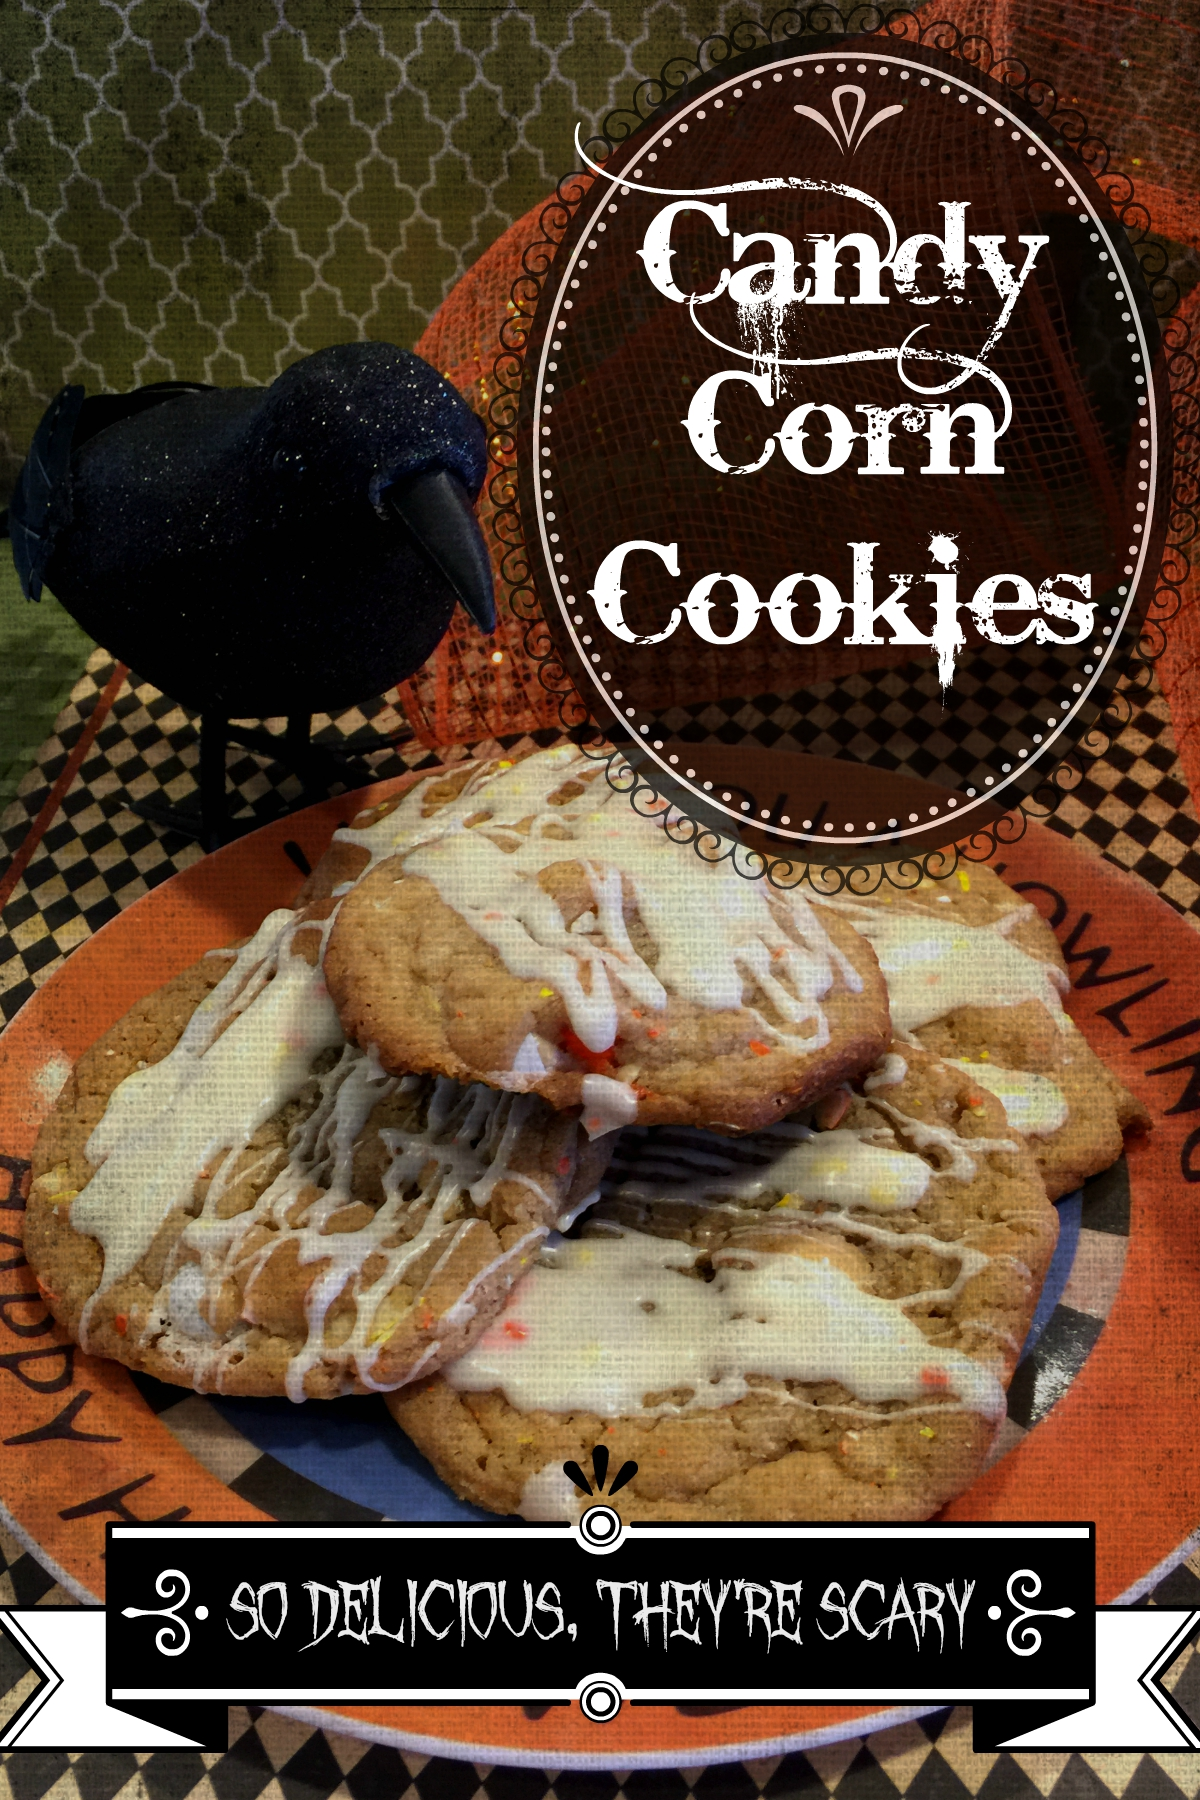 If you love candy corn, you will love these scary delicious cookies! Give them a try for Halloween.